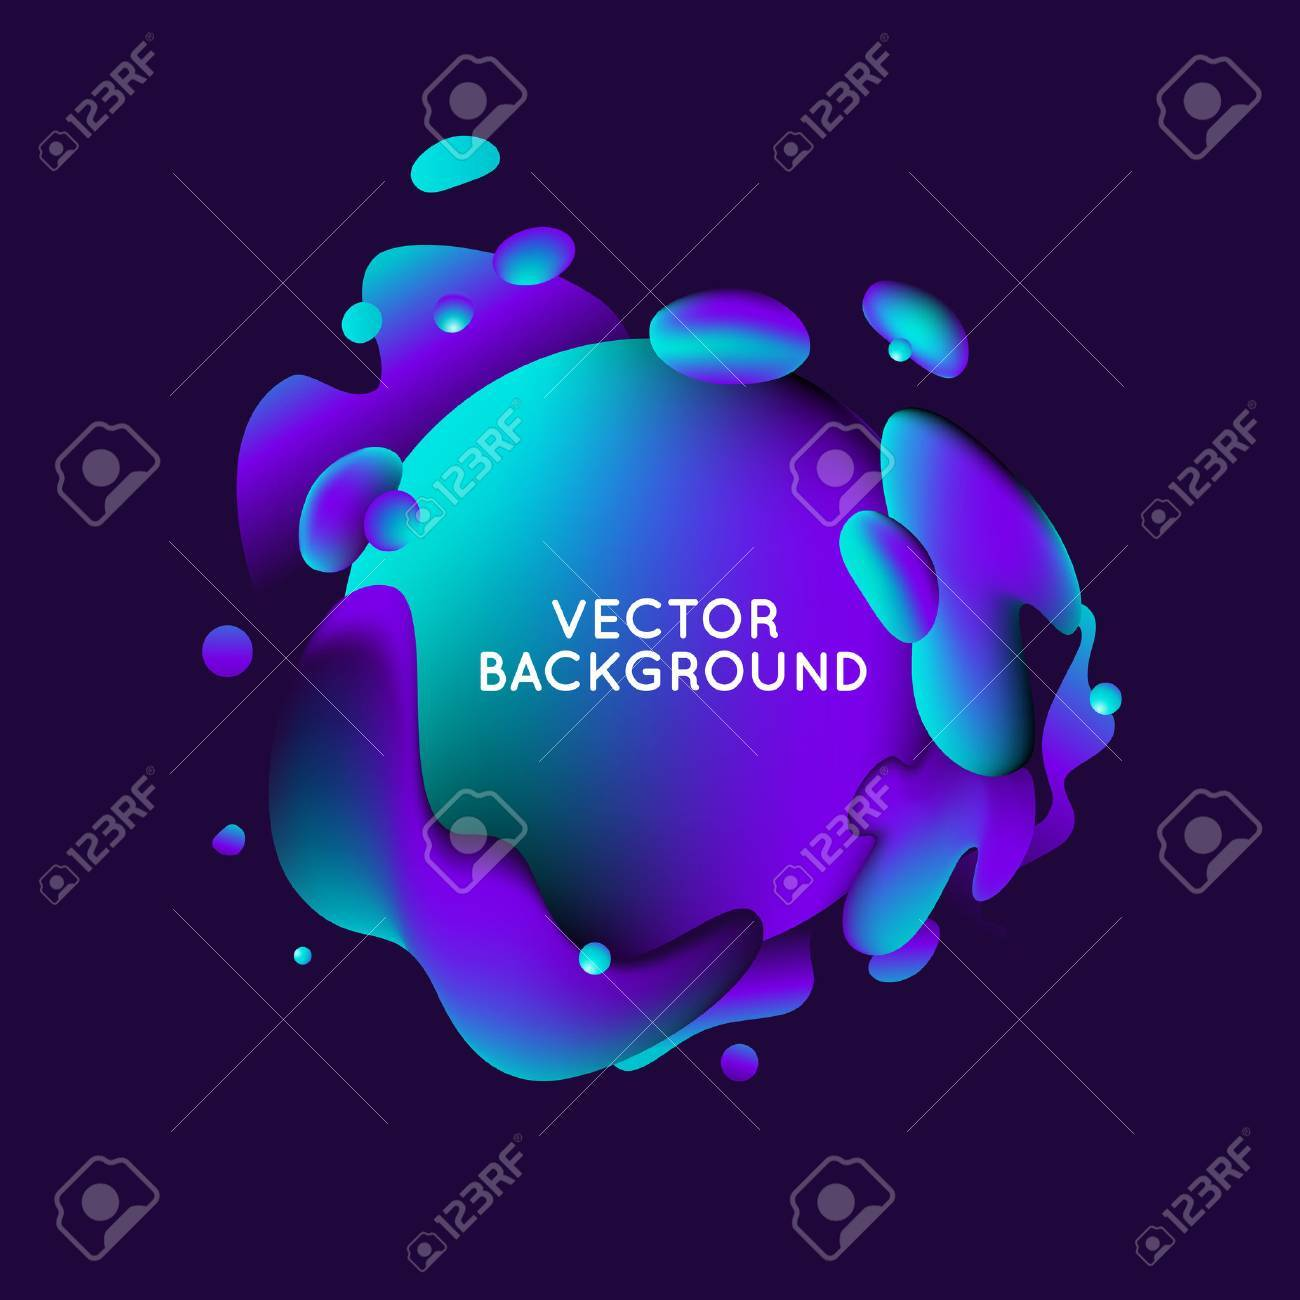 Vector design template and illustration in trendy bright gradient colors with abstract fluid shapes, paint splashes, ink drops and copy space for text - banner, cover and background - 73225898